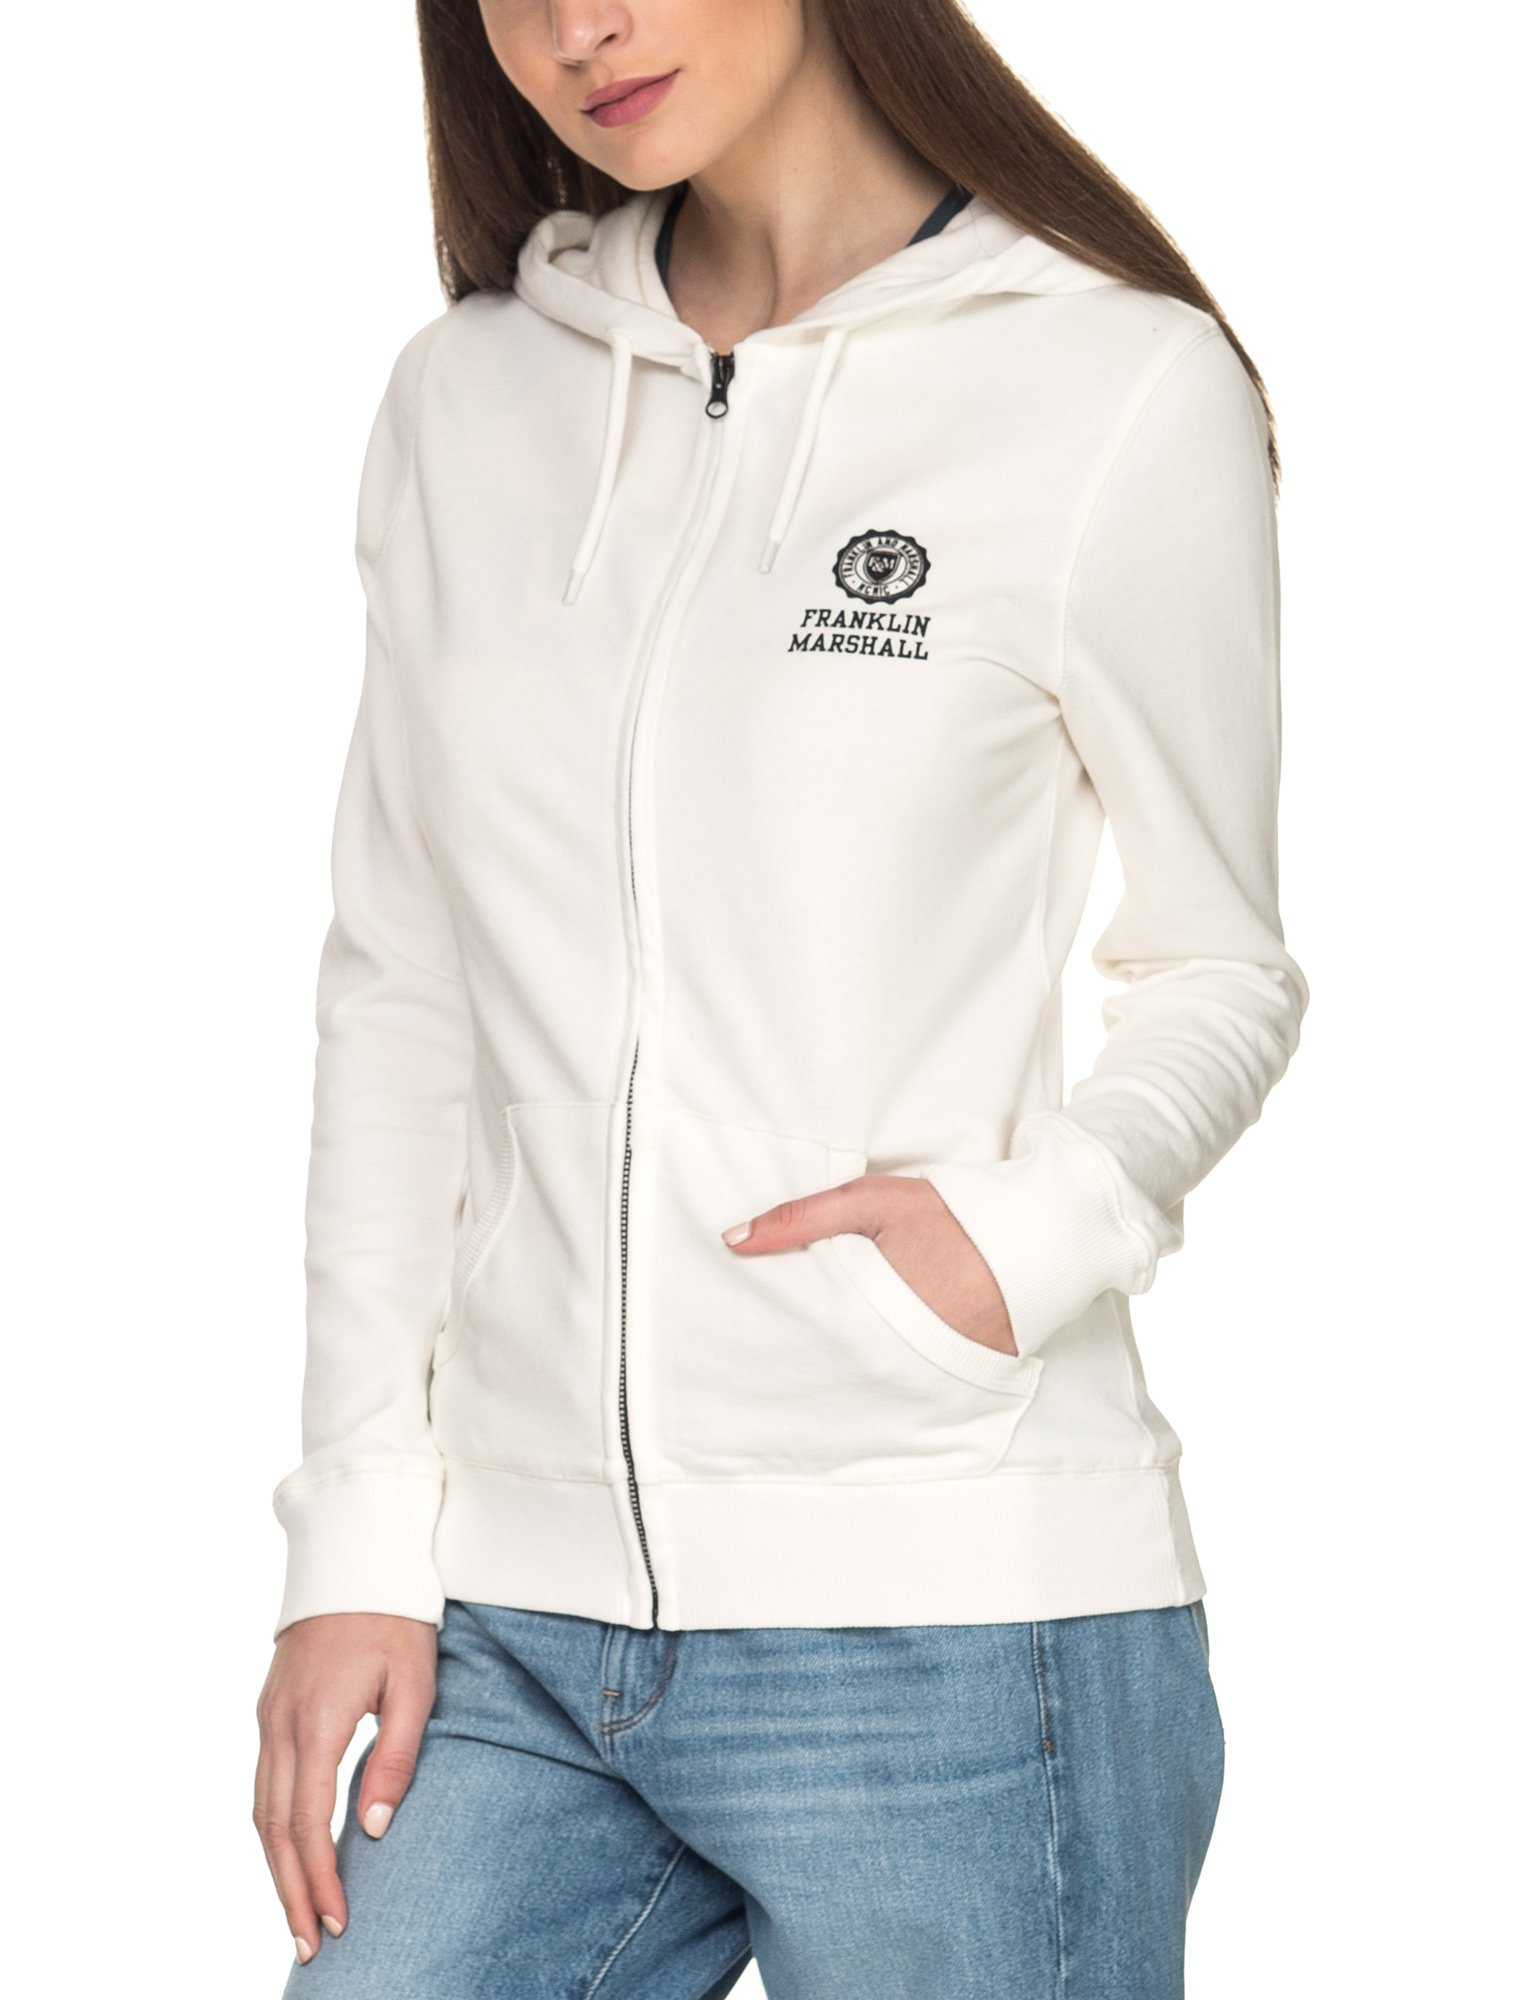 Franklin & Marshall Women's Women's White Hoodie In Size L White